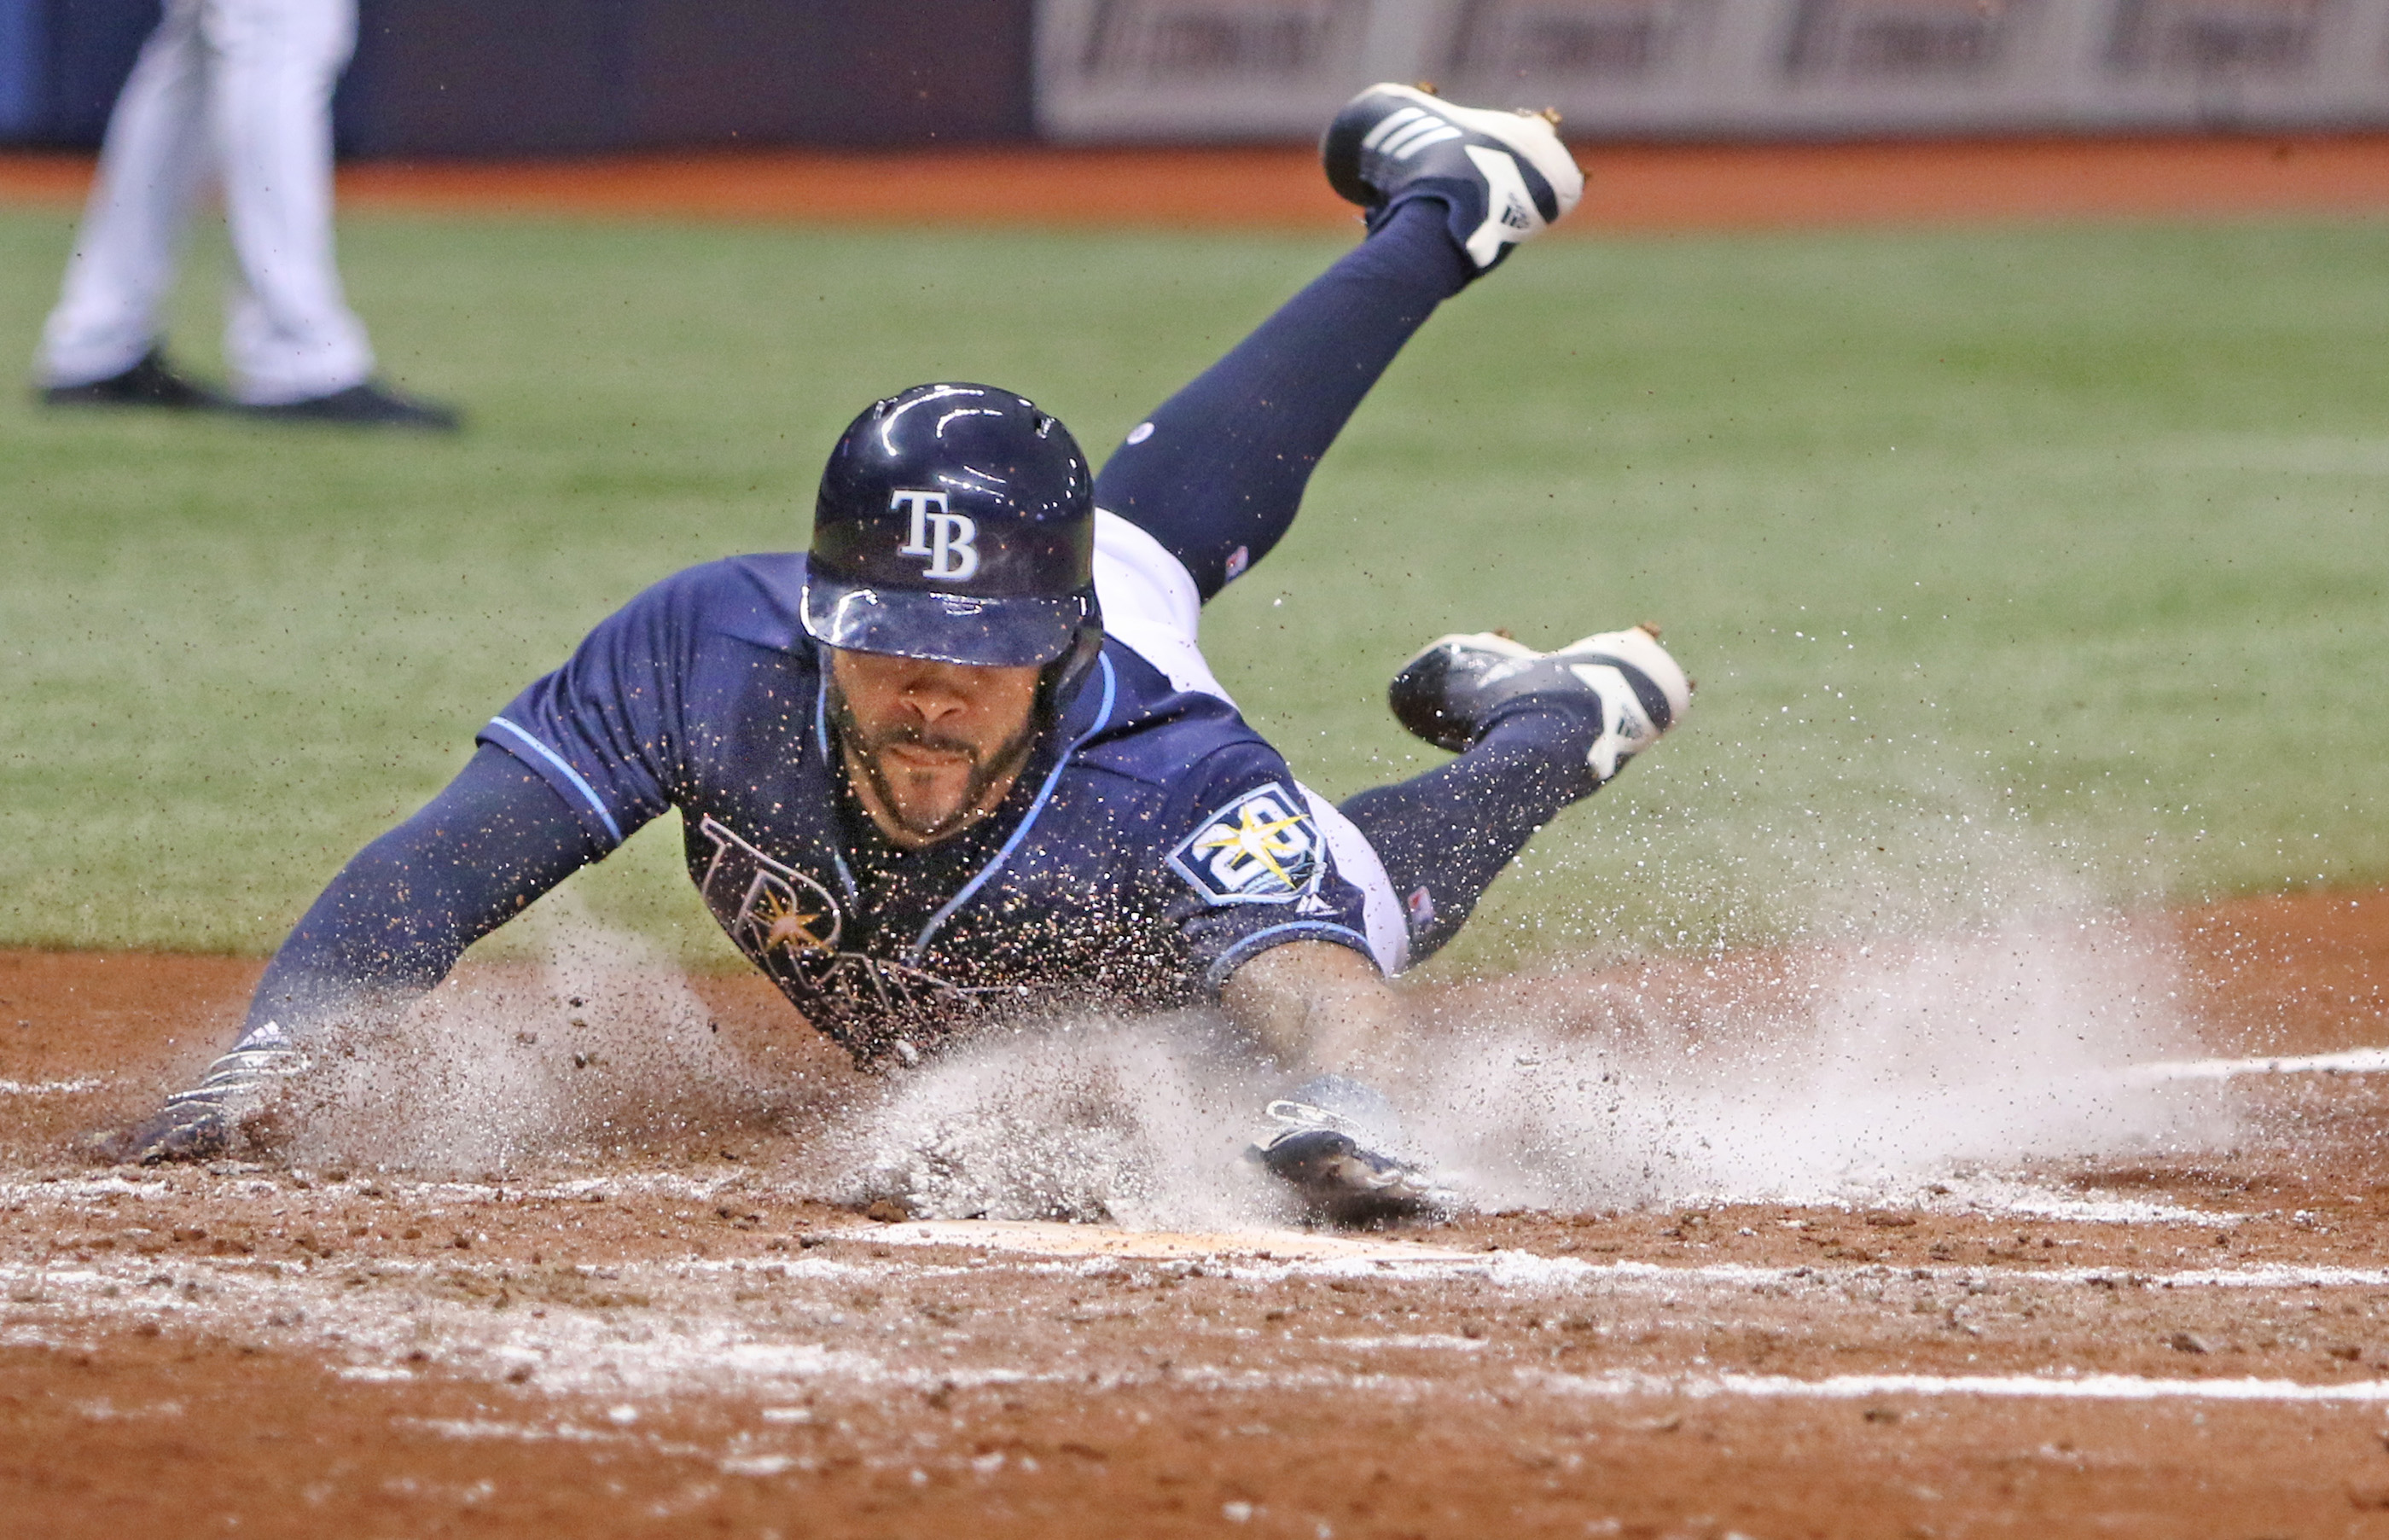 Rays journal: Pham on 10-day DL, Snell back on the mound